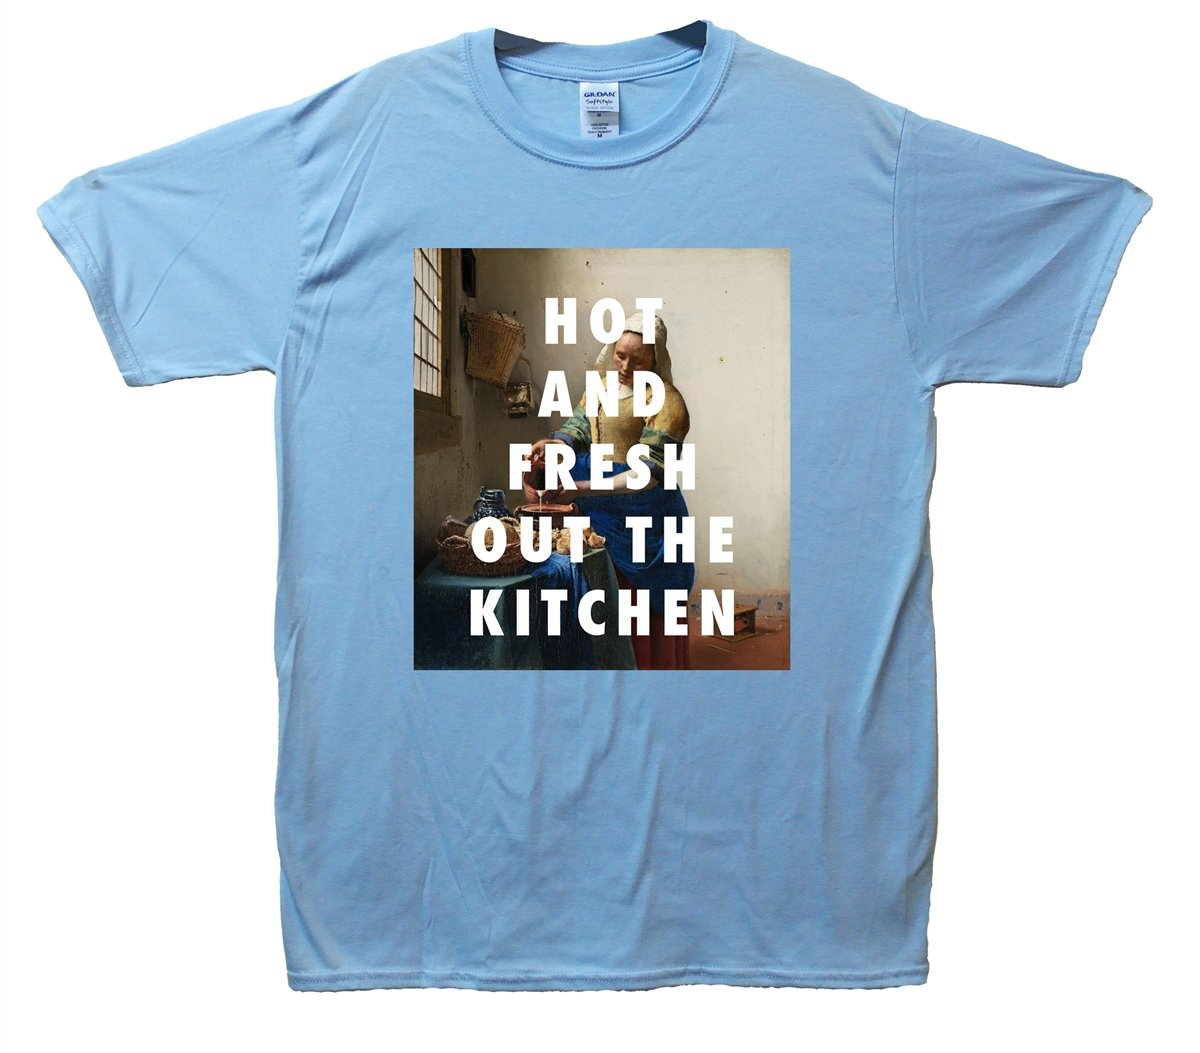 Hot And Fresh Out The Kitchen T-Shirt: Amazon.co.uk: Clothing